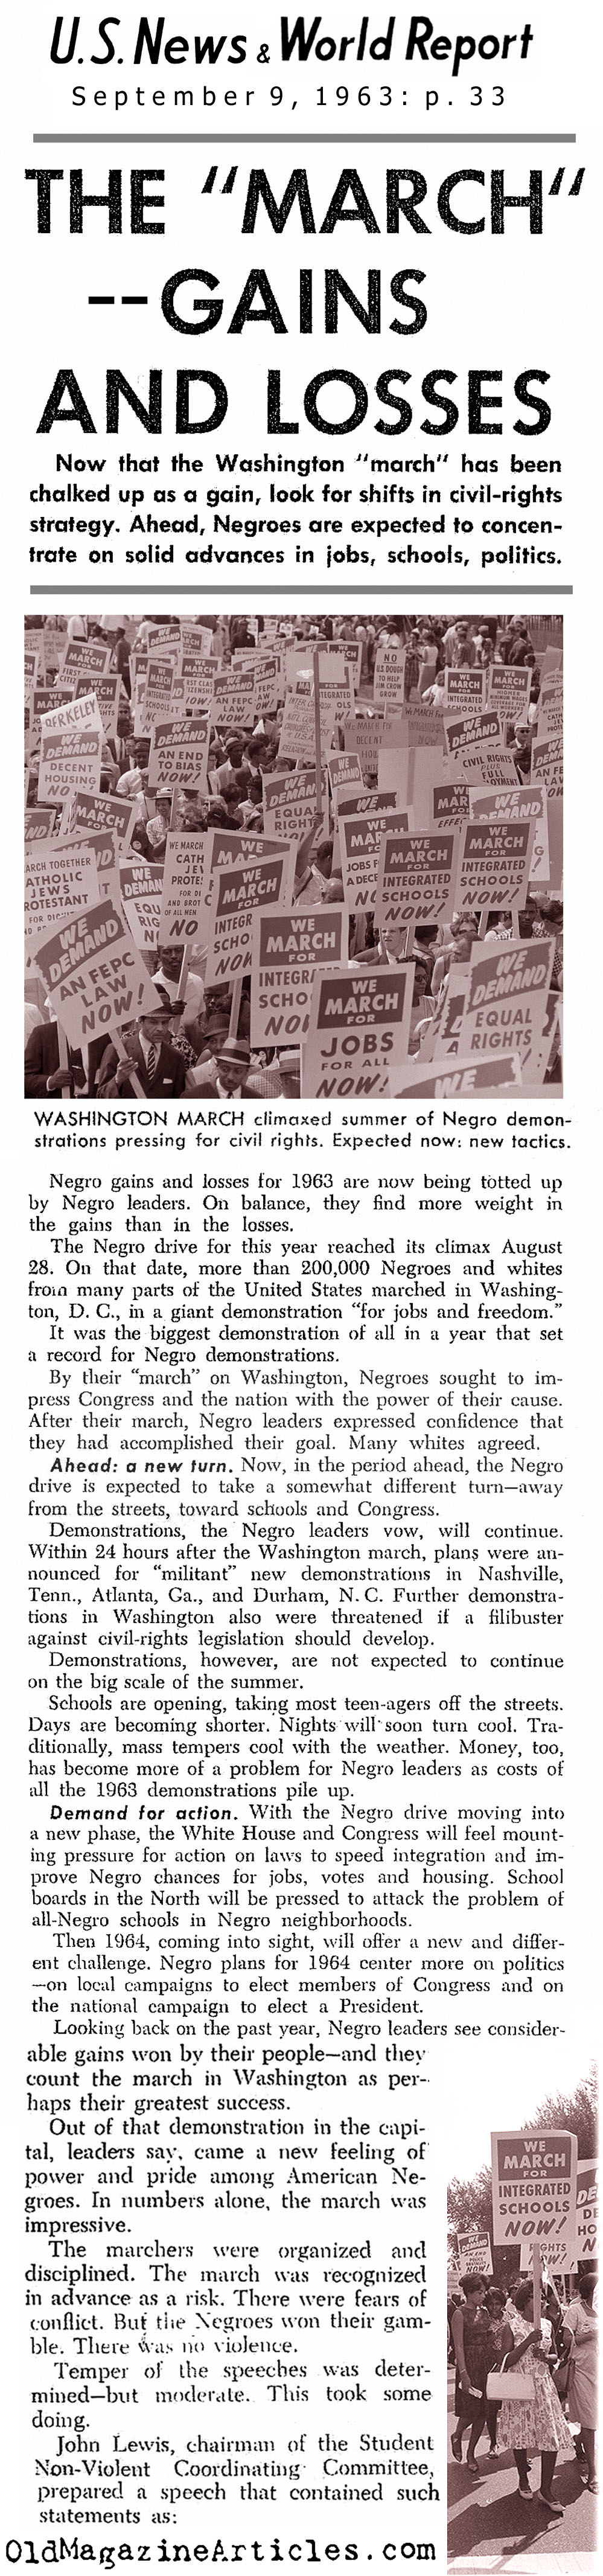 King's March in Washington (United States News, 1963)